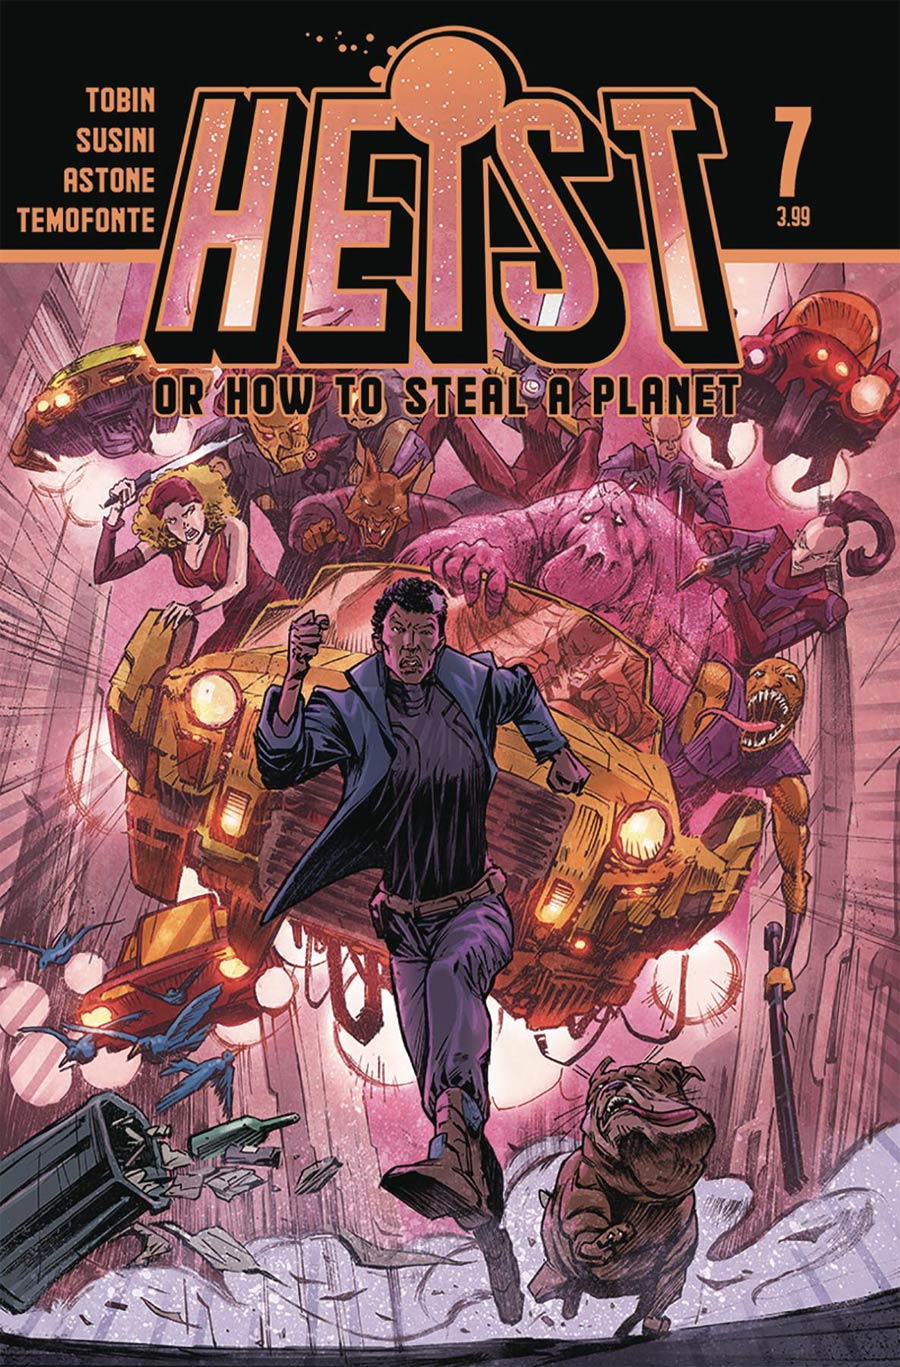 Heist Or How To Steal A Planet #7